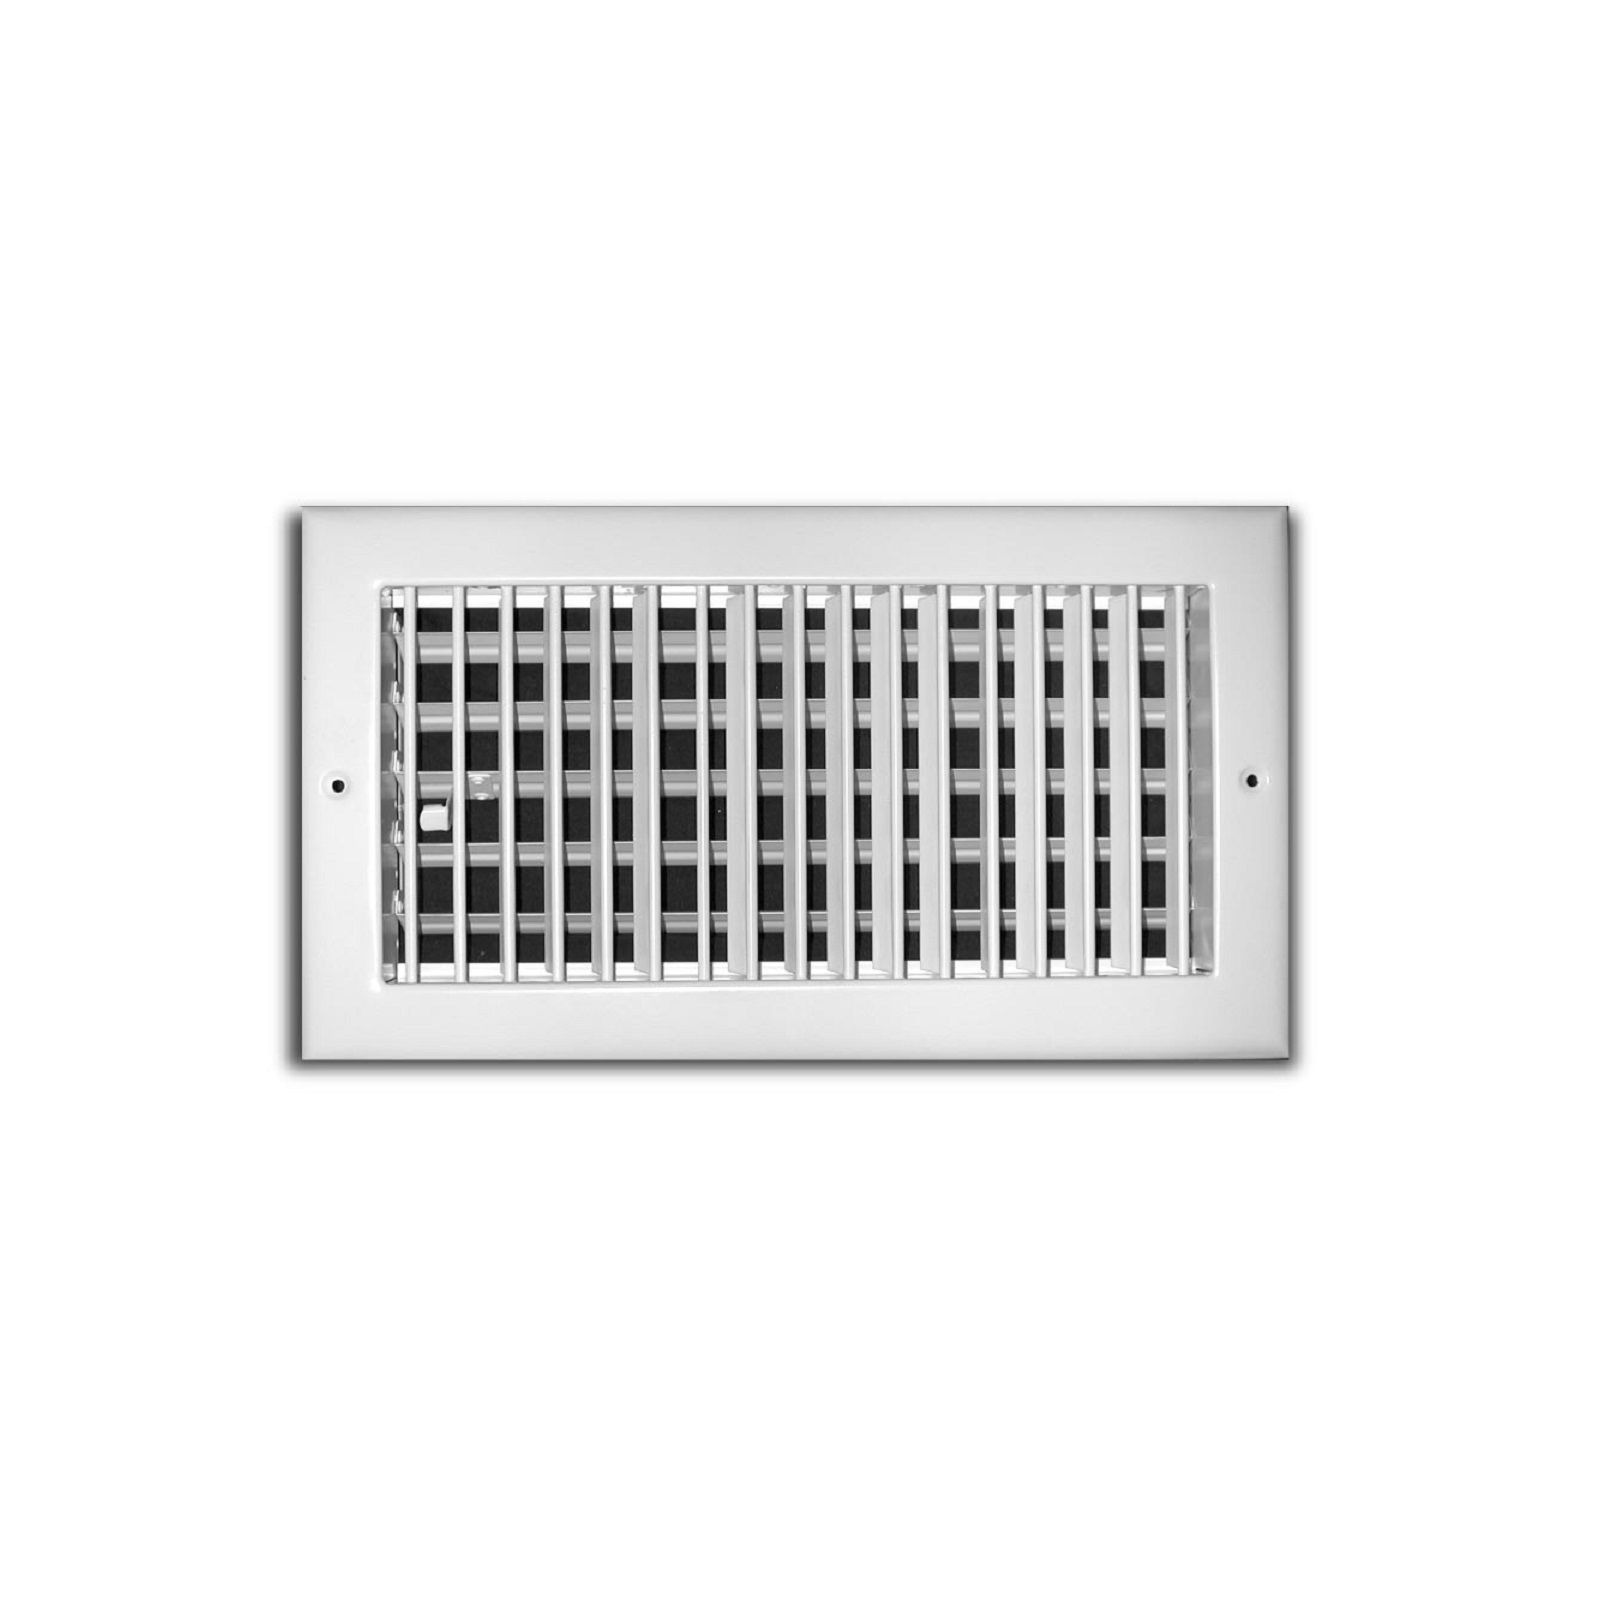 "TRUaire 210VM 14X12 - Steel Adjustable 1-Way Wall/Ceiling Register With Multi Shutter Damper, White, 14"" X 12"""